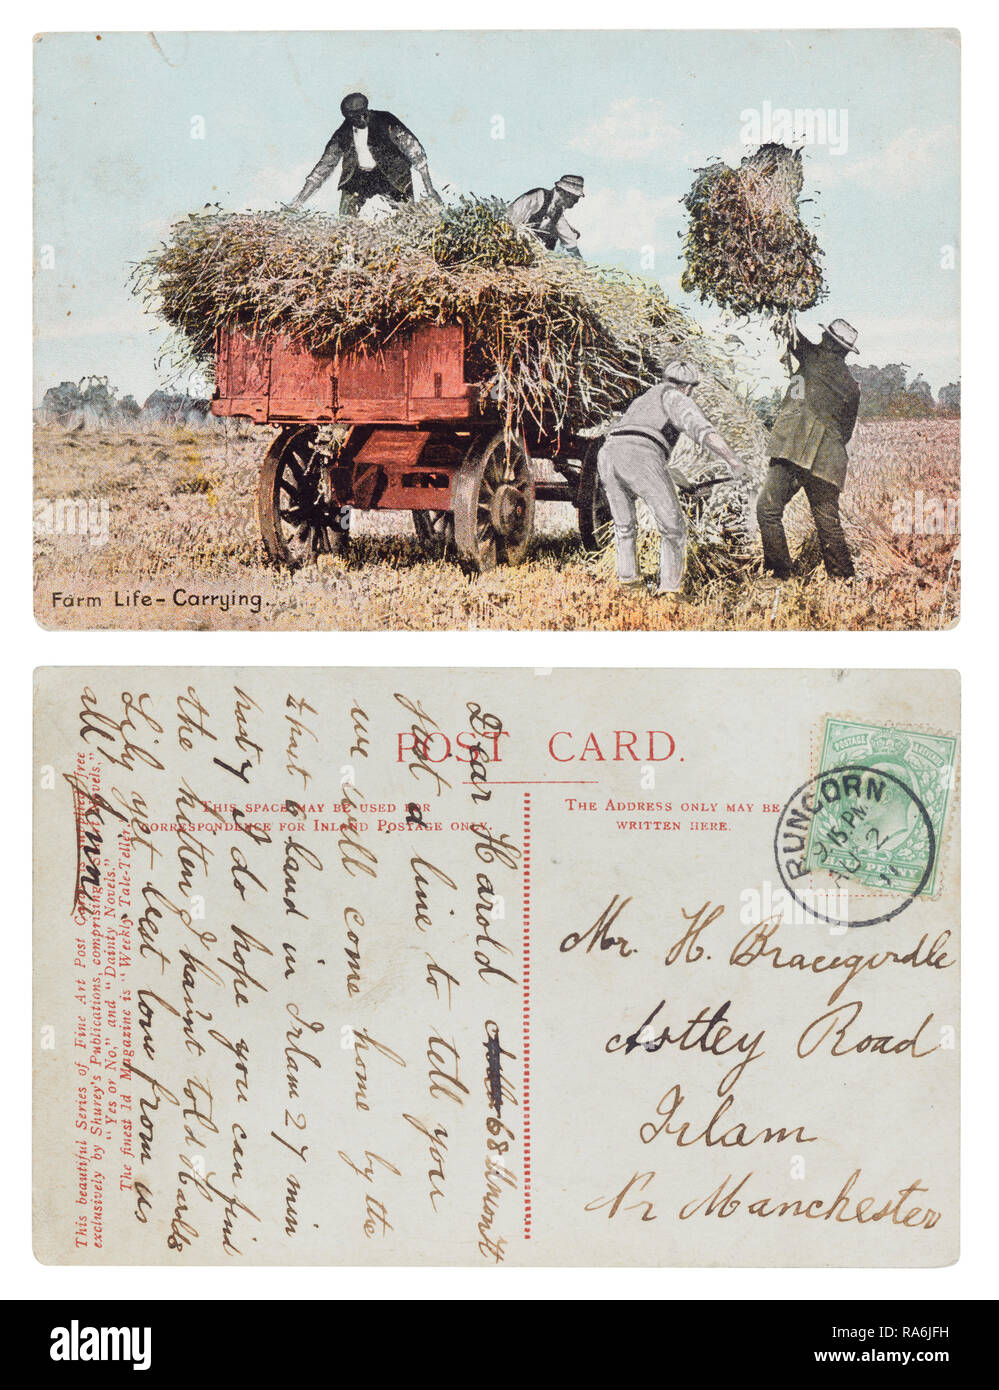 Postcard sent in 1911 from Runcorn to Harold Bracegirdle, Astley Road, Irlam, Manchester showing farm life, carrying and mentioning lost kitten - Stock Image